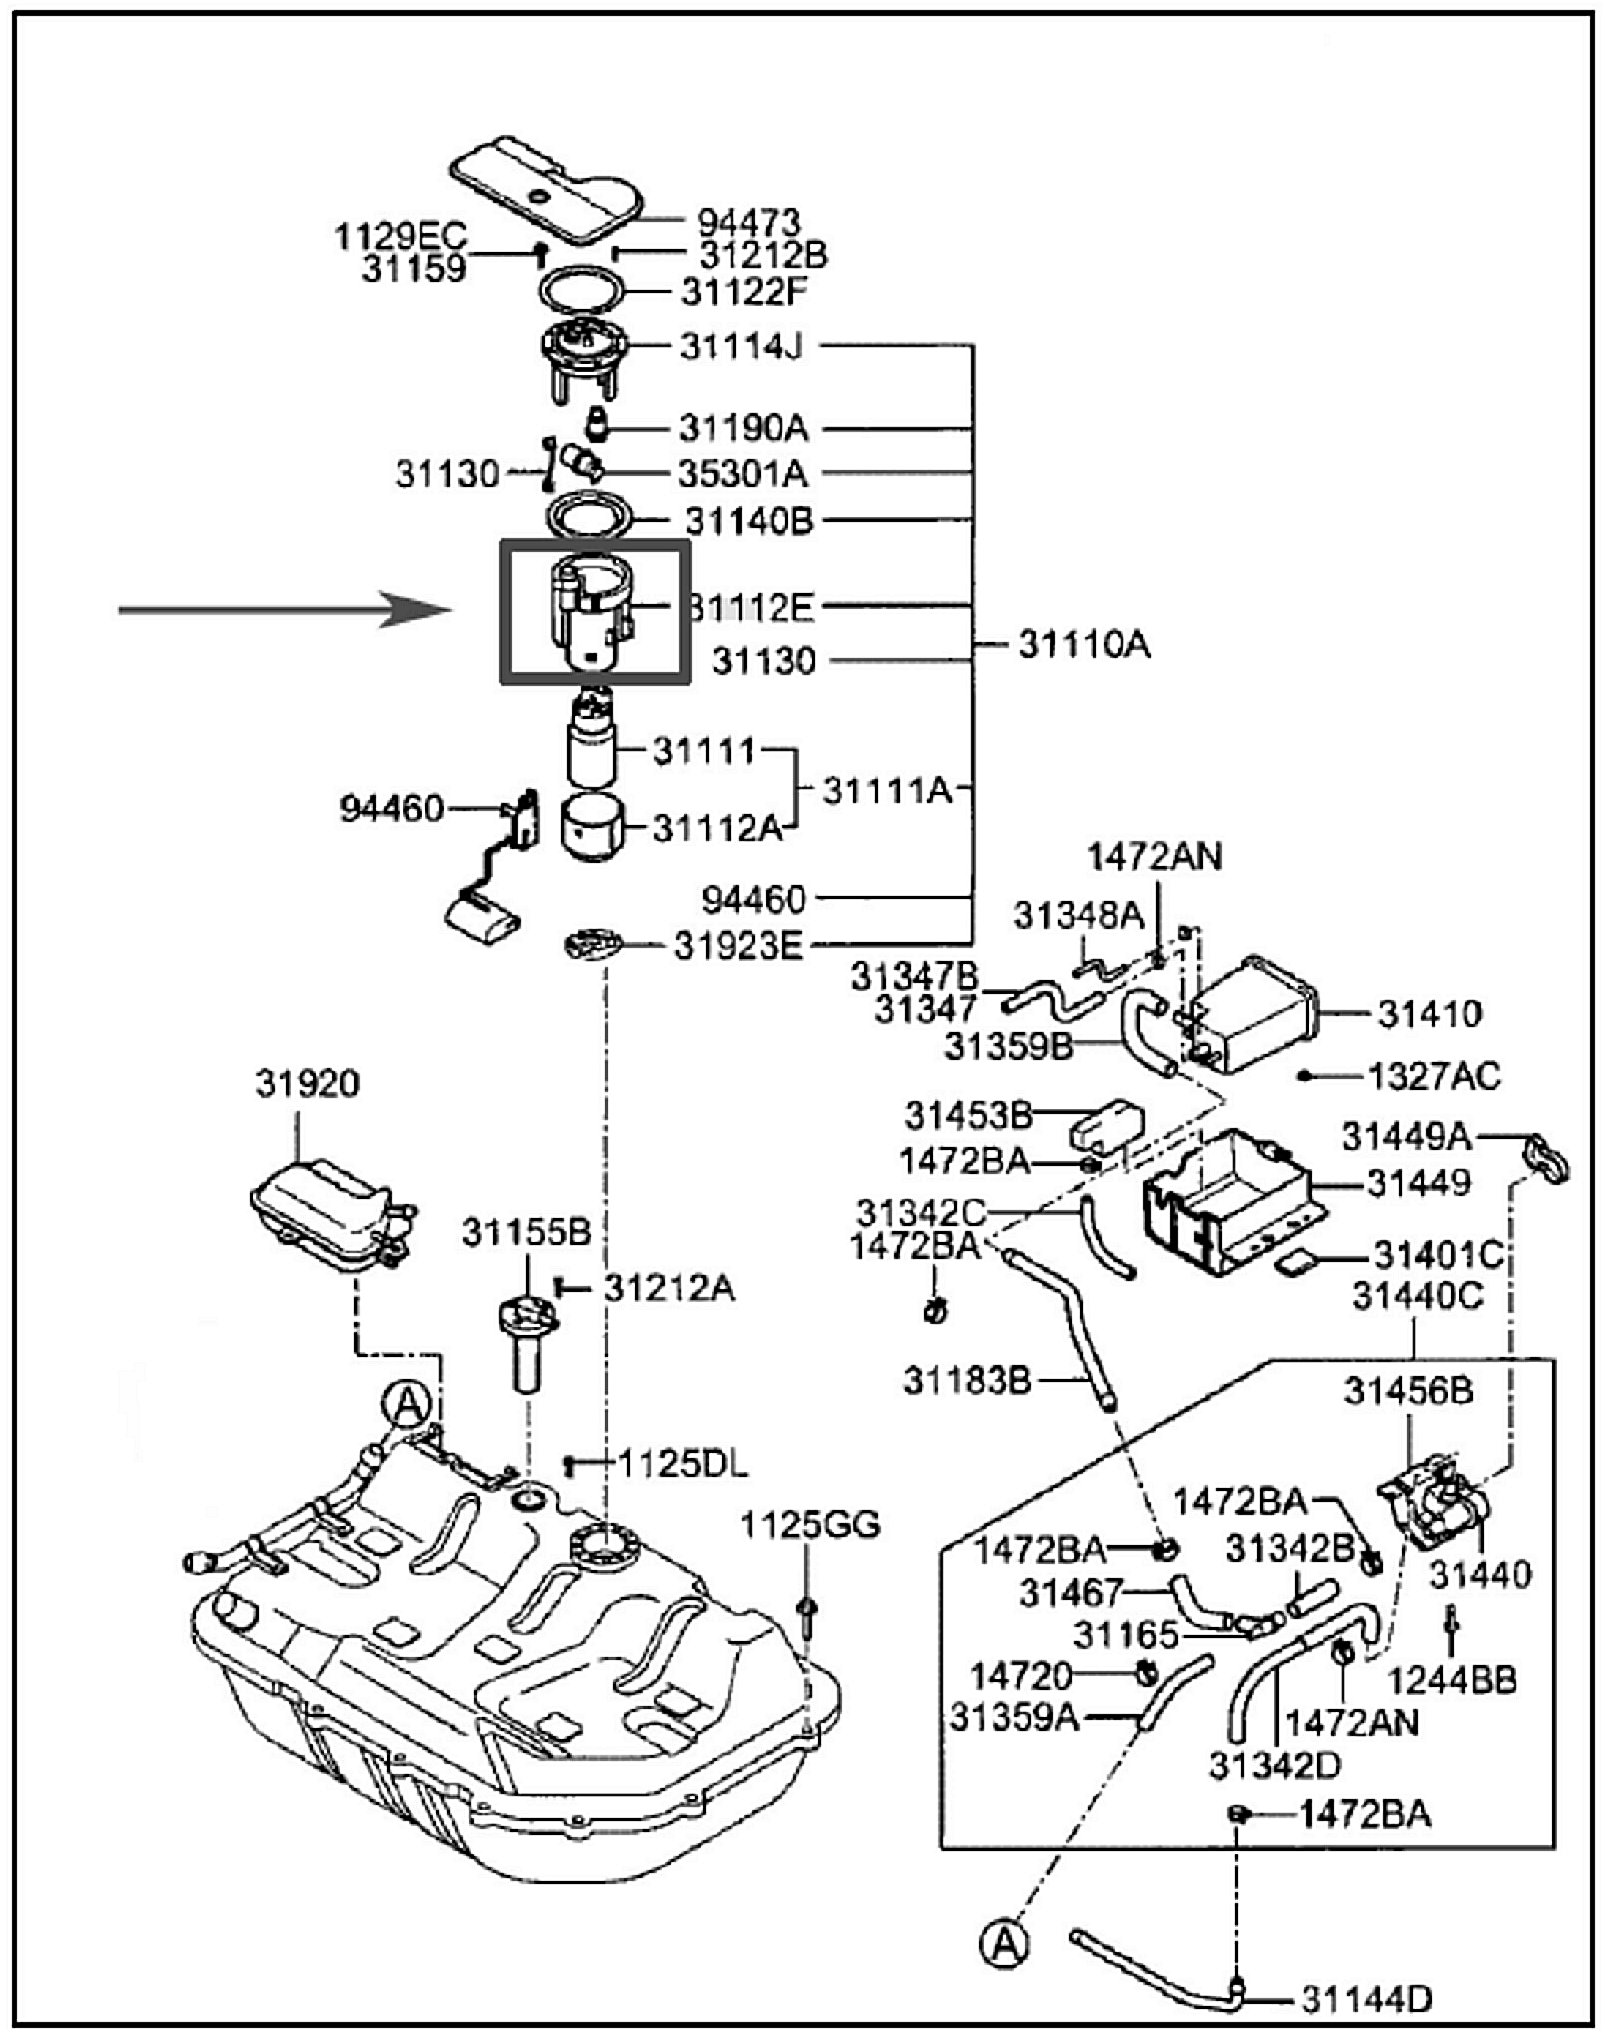 2003 Hyundai Santa Fe Fuel Tank Wiring Diagram Library 2005 Sonata Accent Filter Location